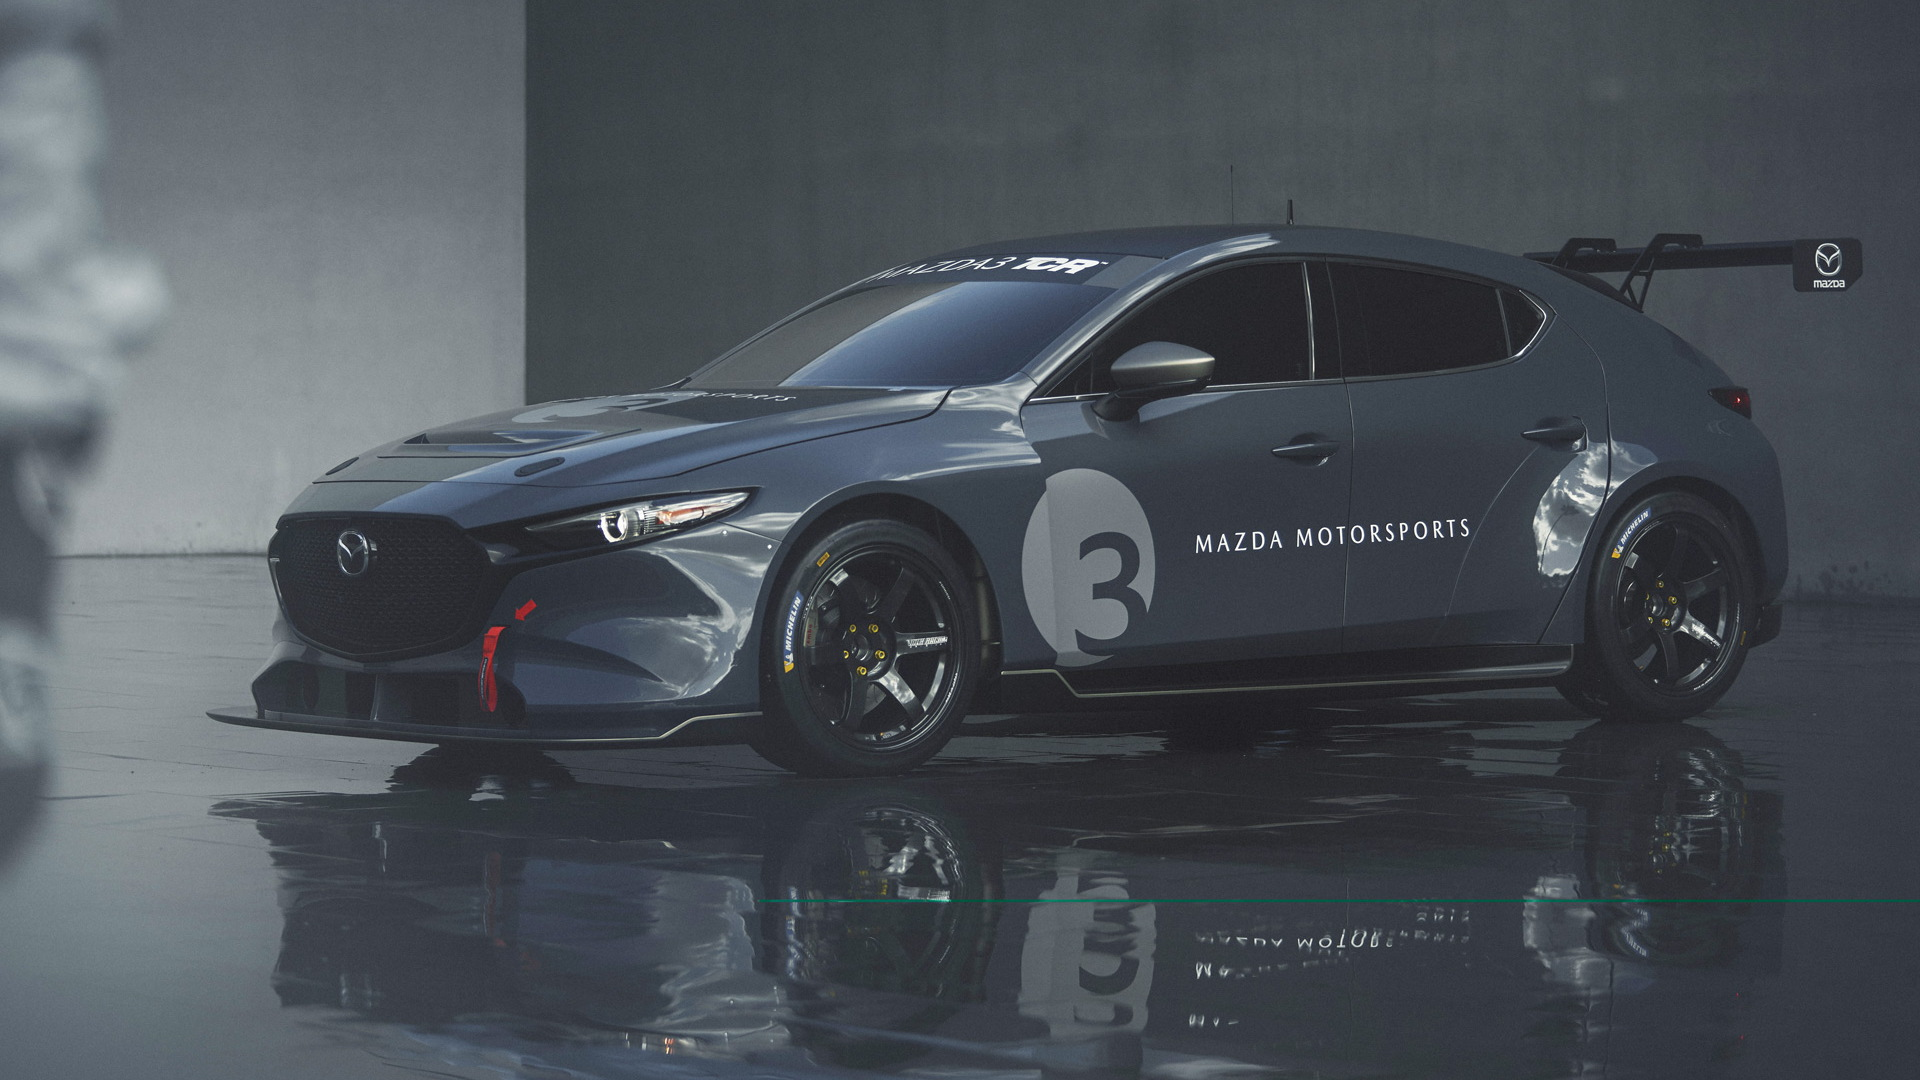 2020 Mazda 3 TCR race car